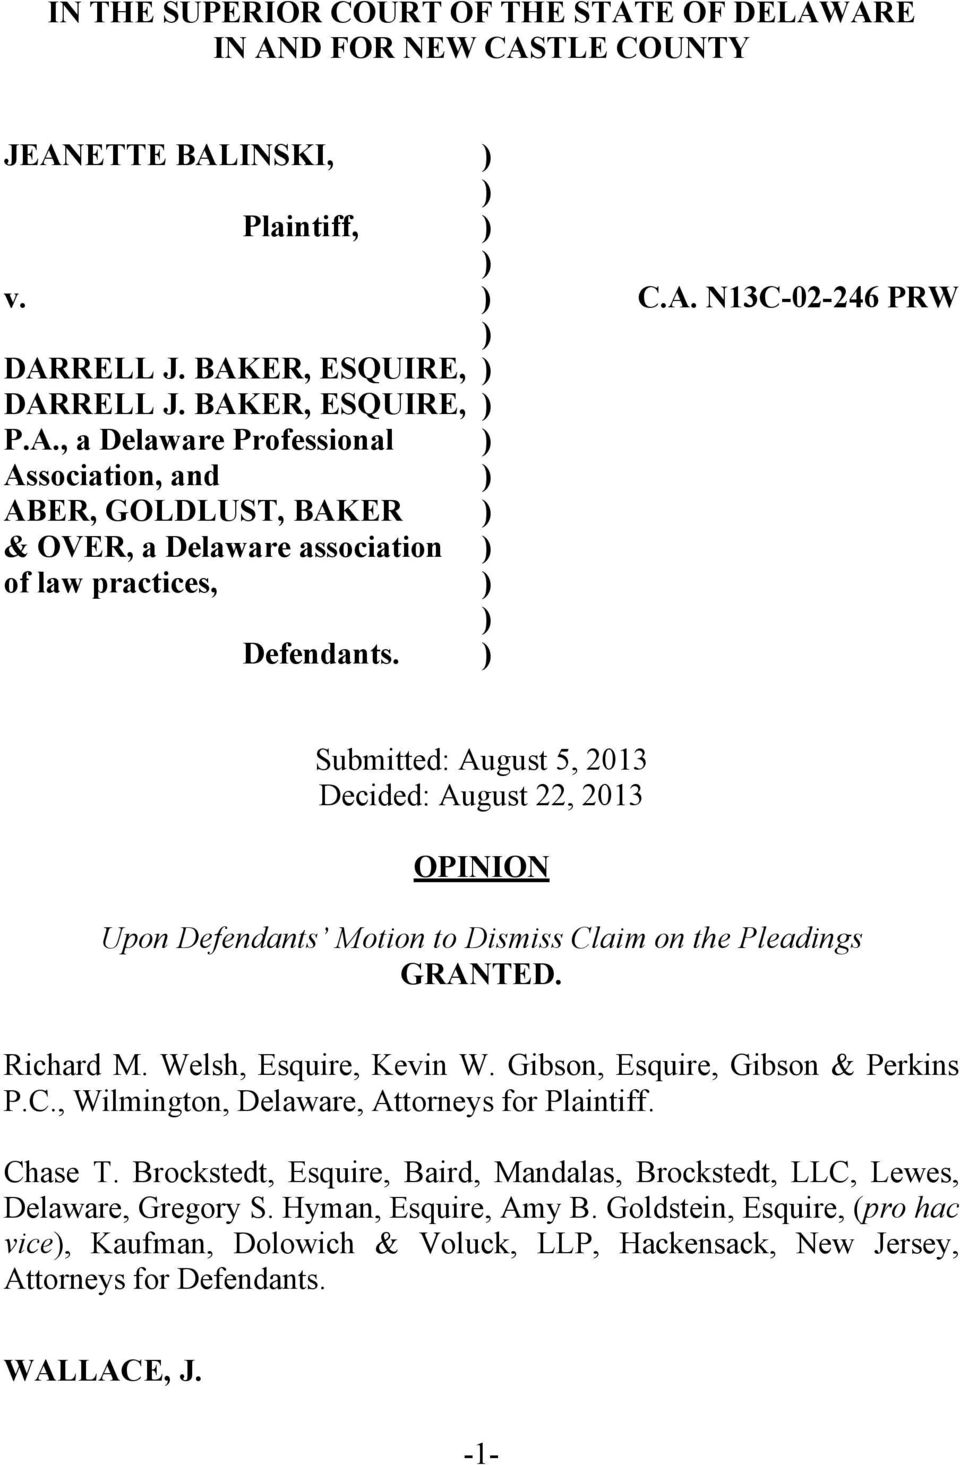 ) Submitted: August 5, 2013 Decided: August 22, 2013 OPINION Upon Defendants Motion to Dismiss Claim on the Pleadings GRANTED. Richard M. Welsh, Esquire, Kevin W. Gibson, Esquire, Gibson & Perkins P.